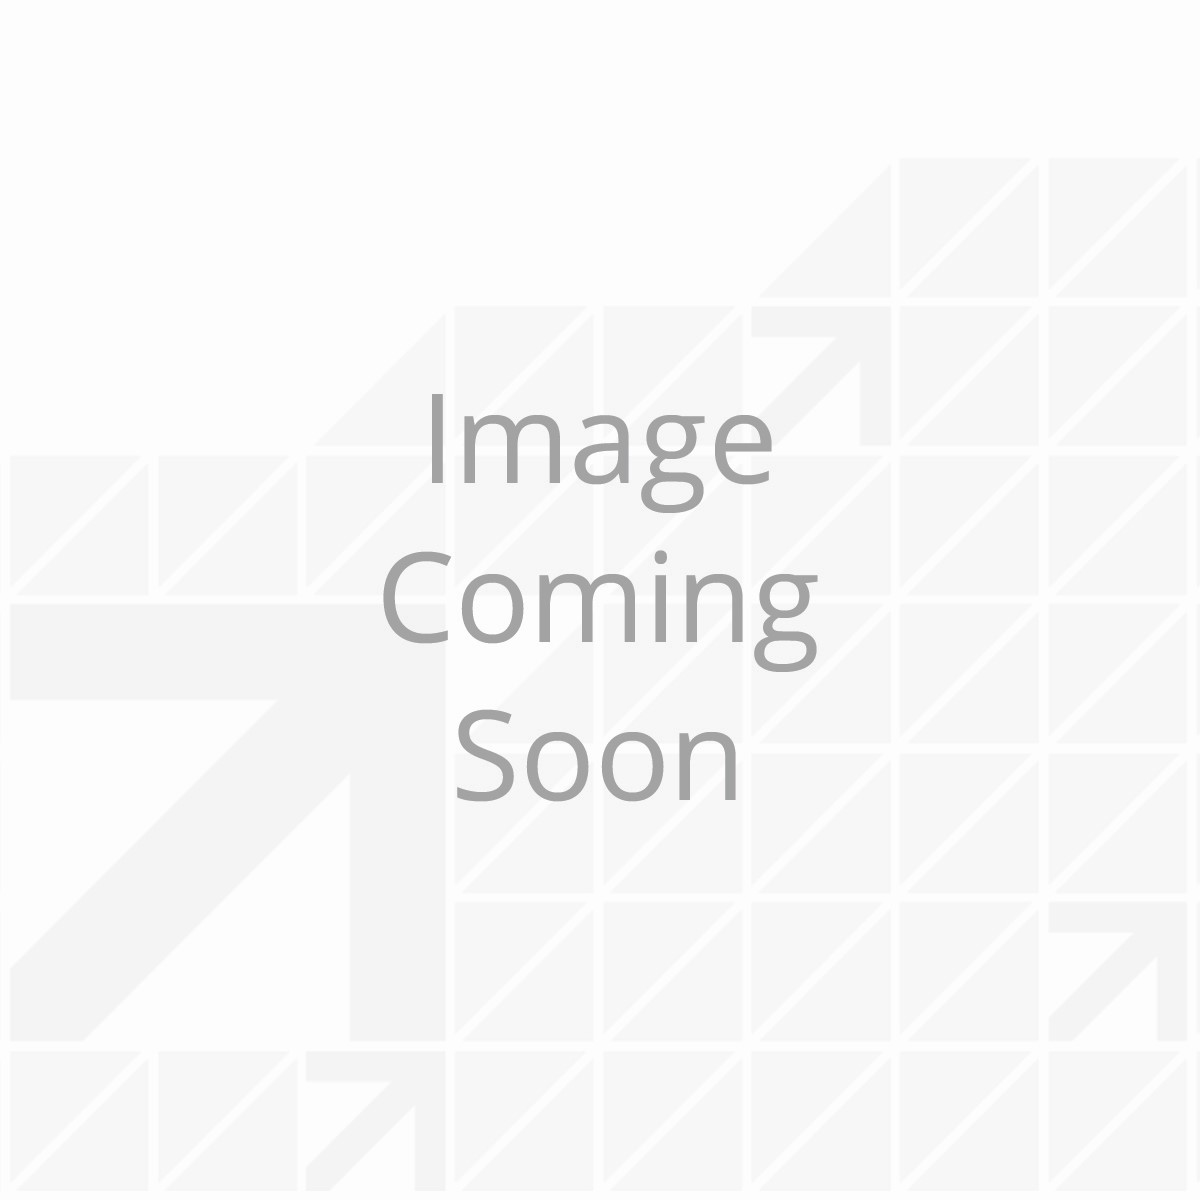 HDMI Cable - 10' (Black)